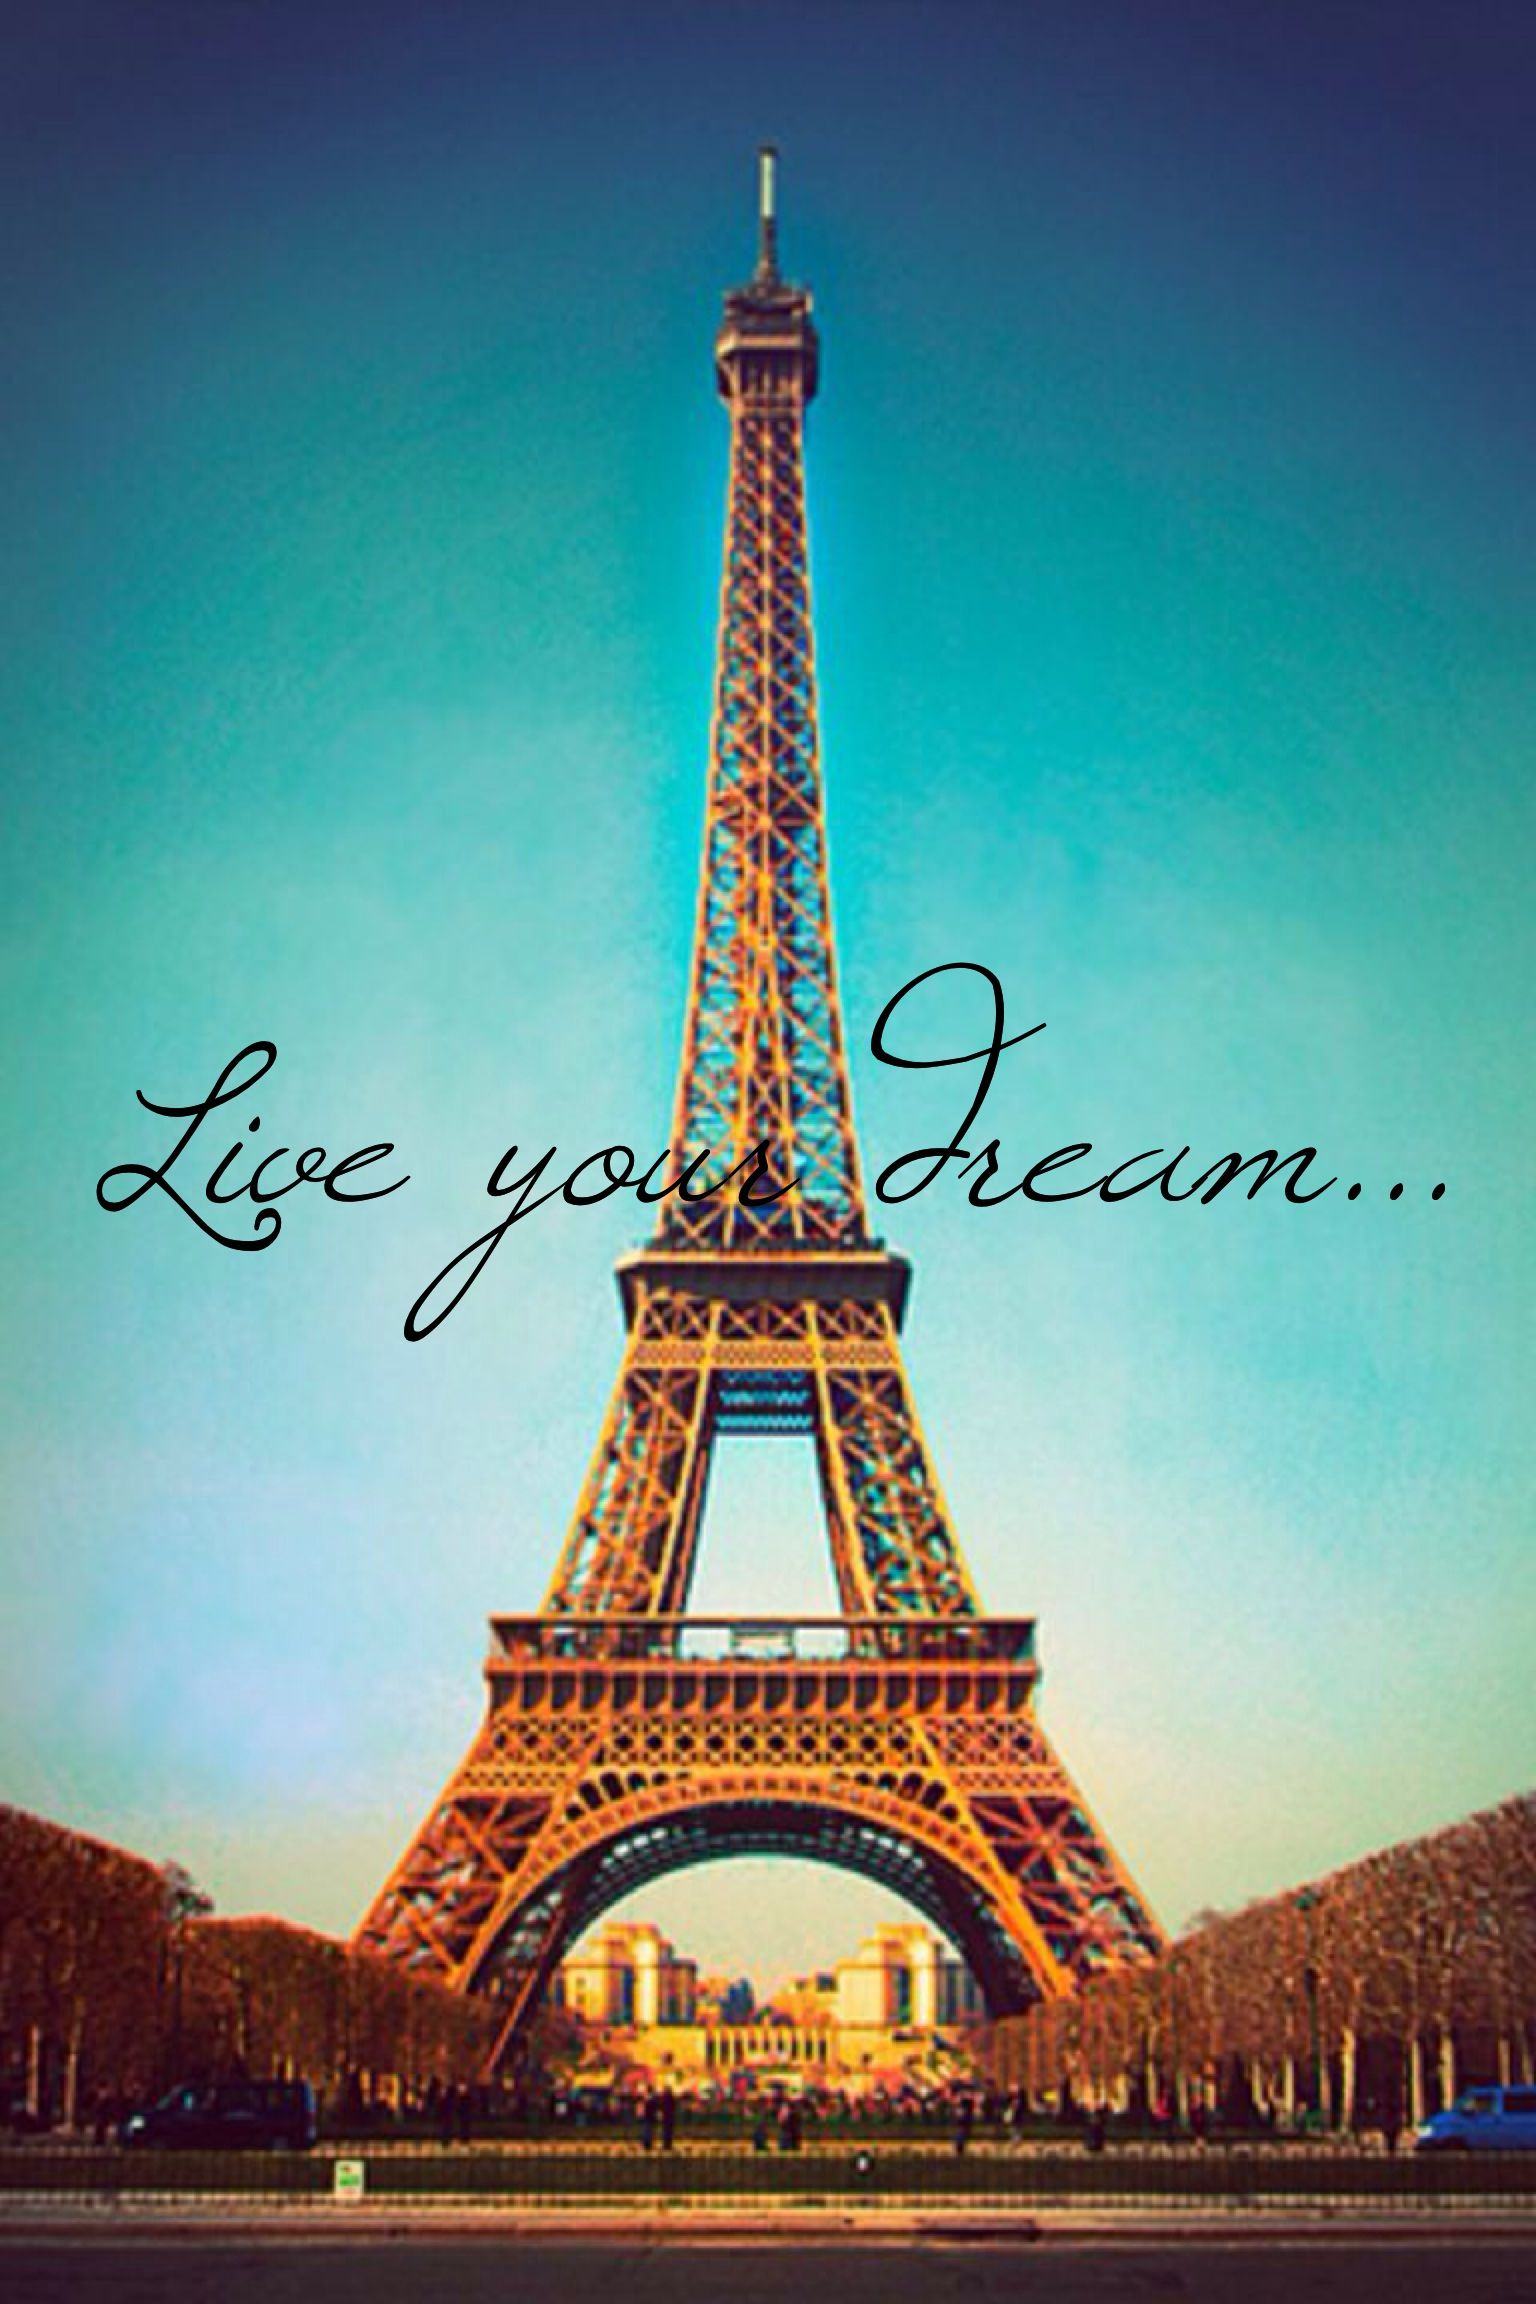 Cute Eiffel Tower pic! Live your dream travel